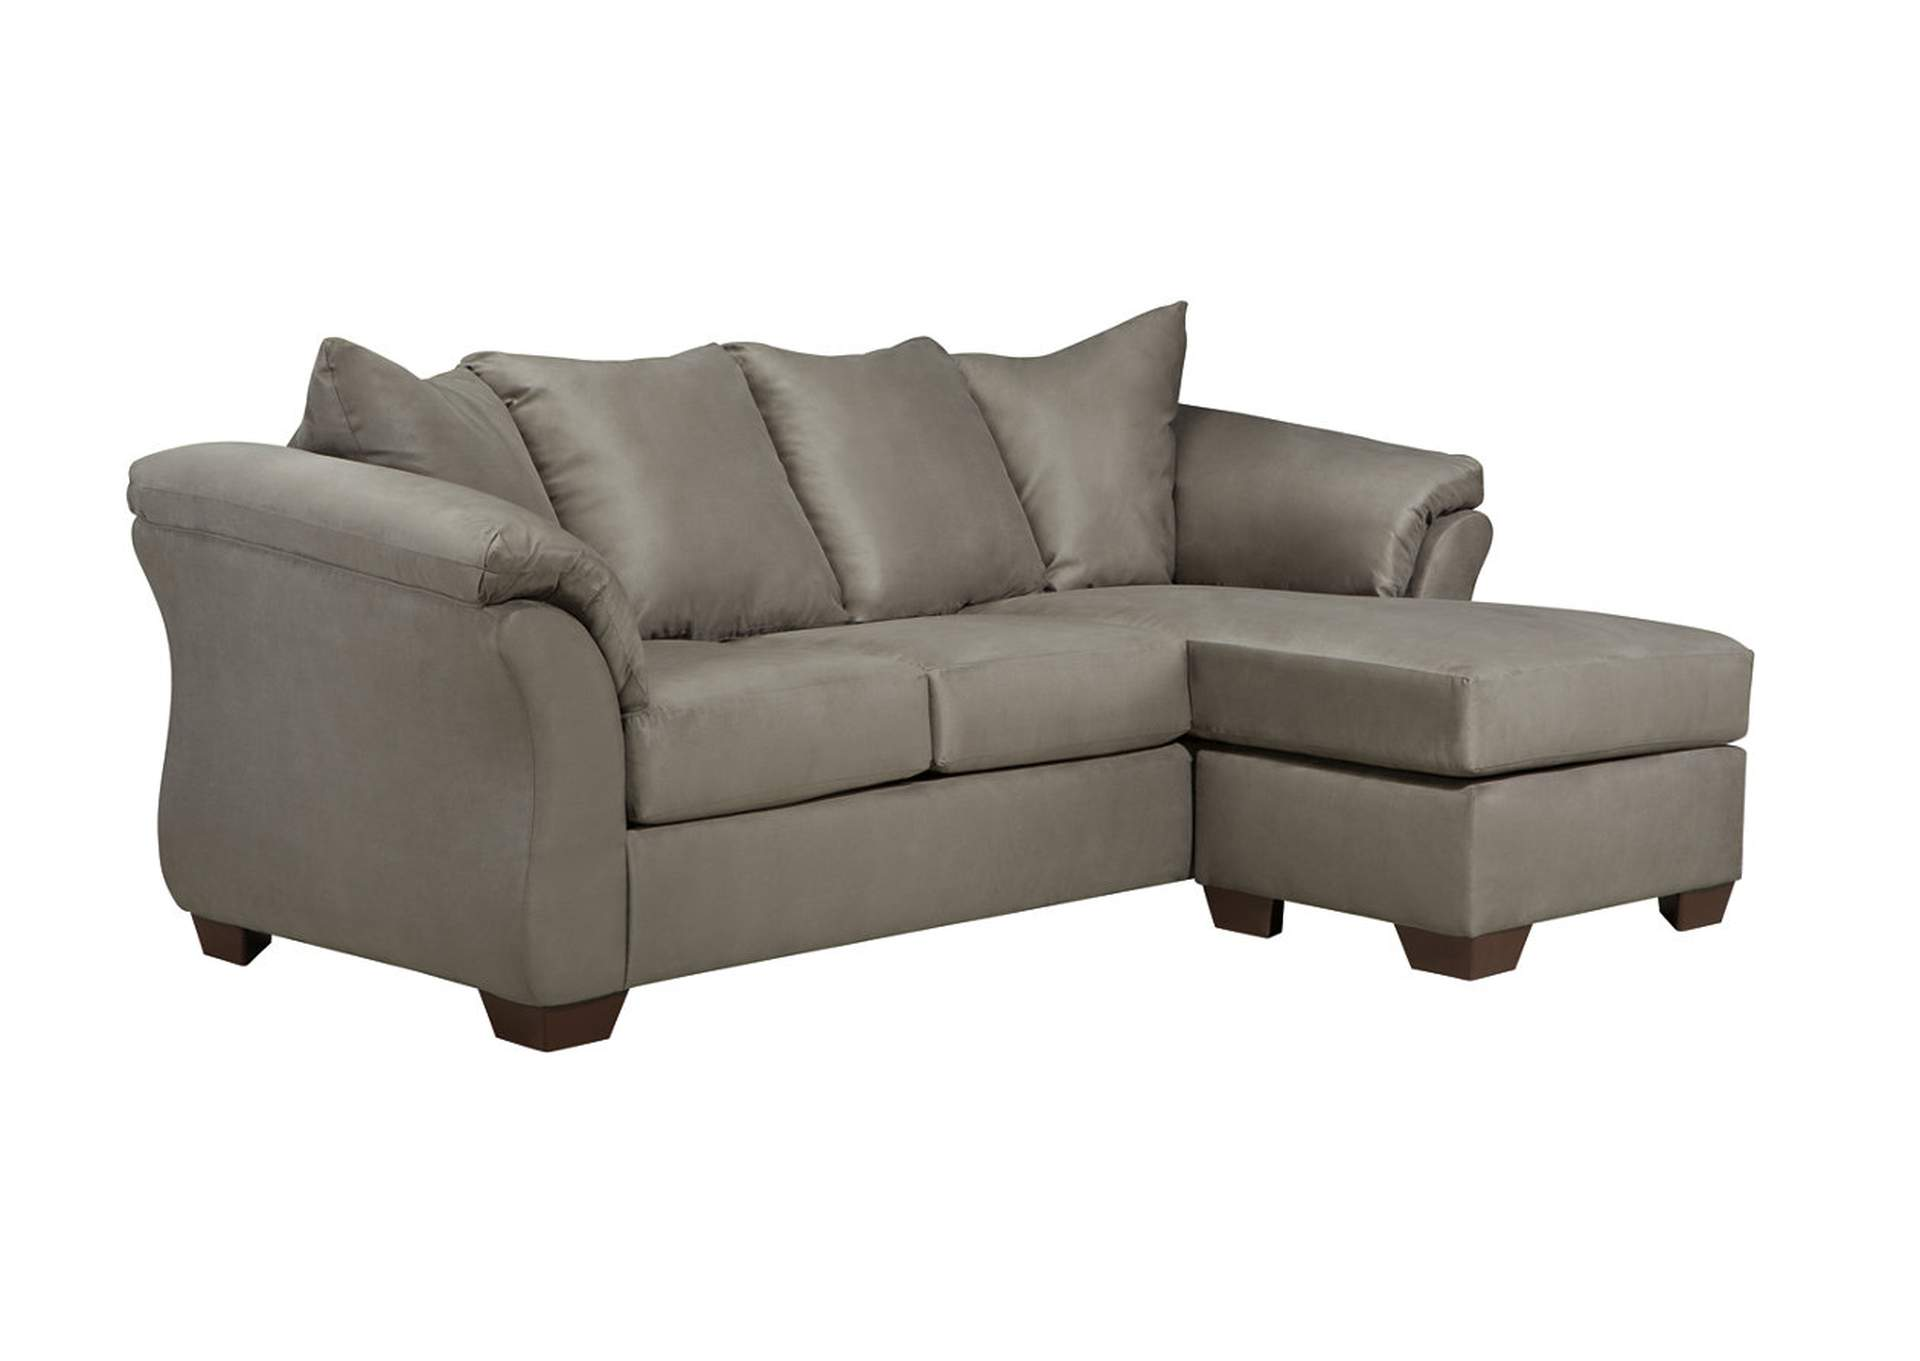 Darcy Cobblestone Sofa Chaise,ABF Signature Design by Ashley